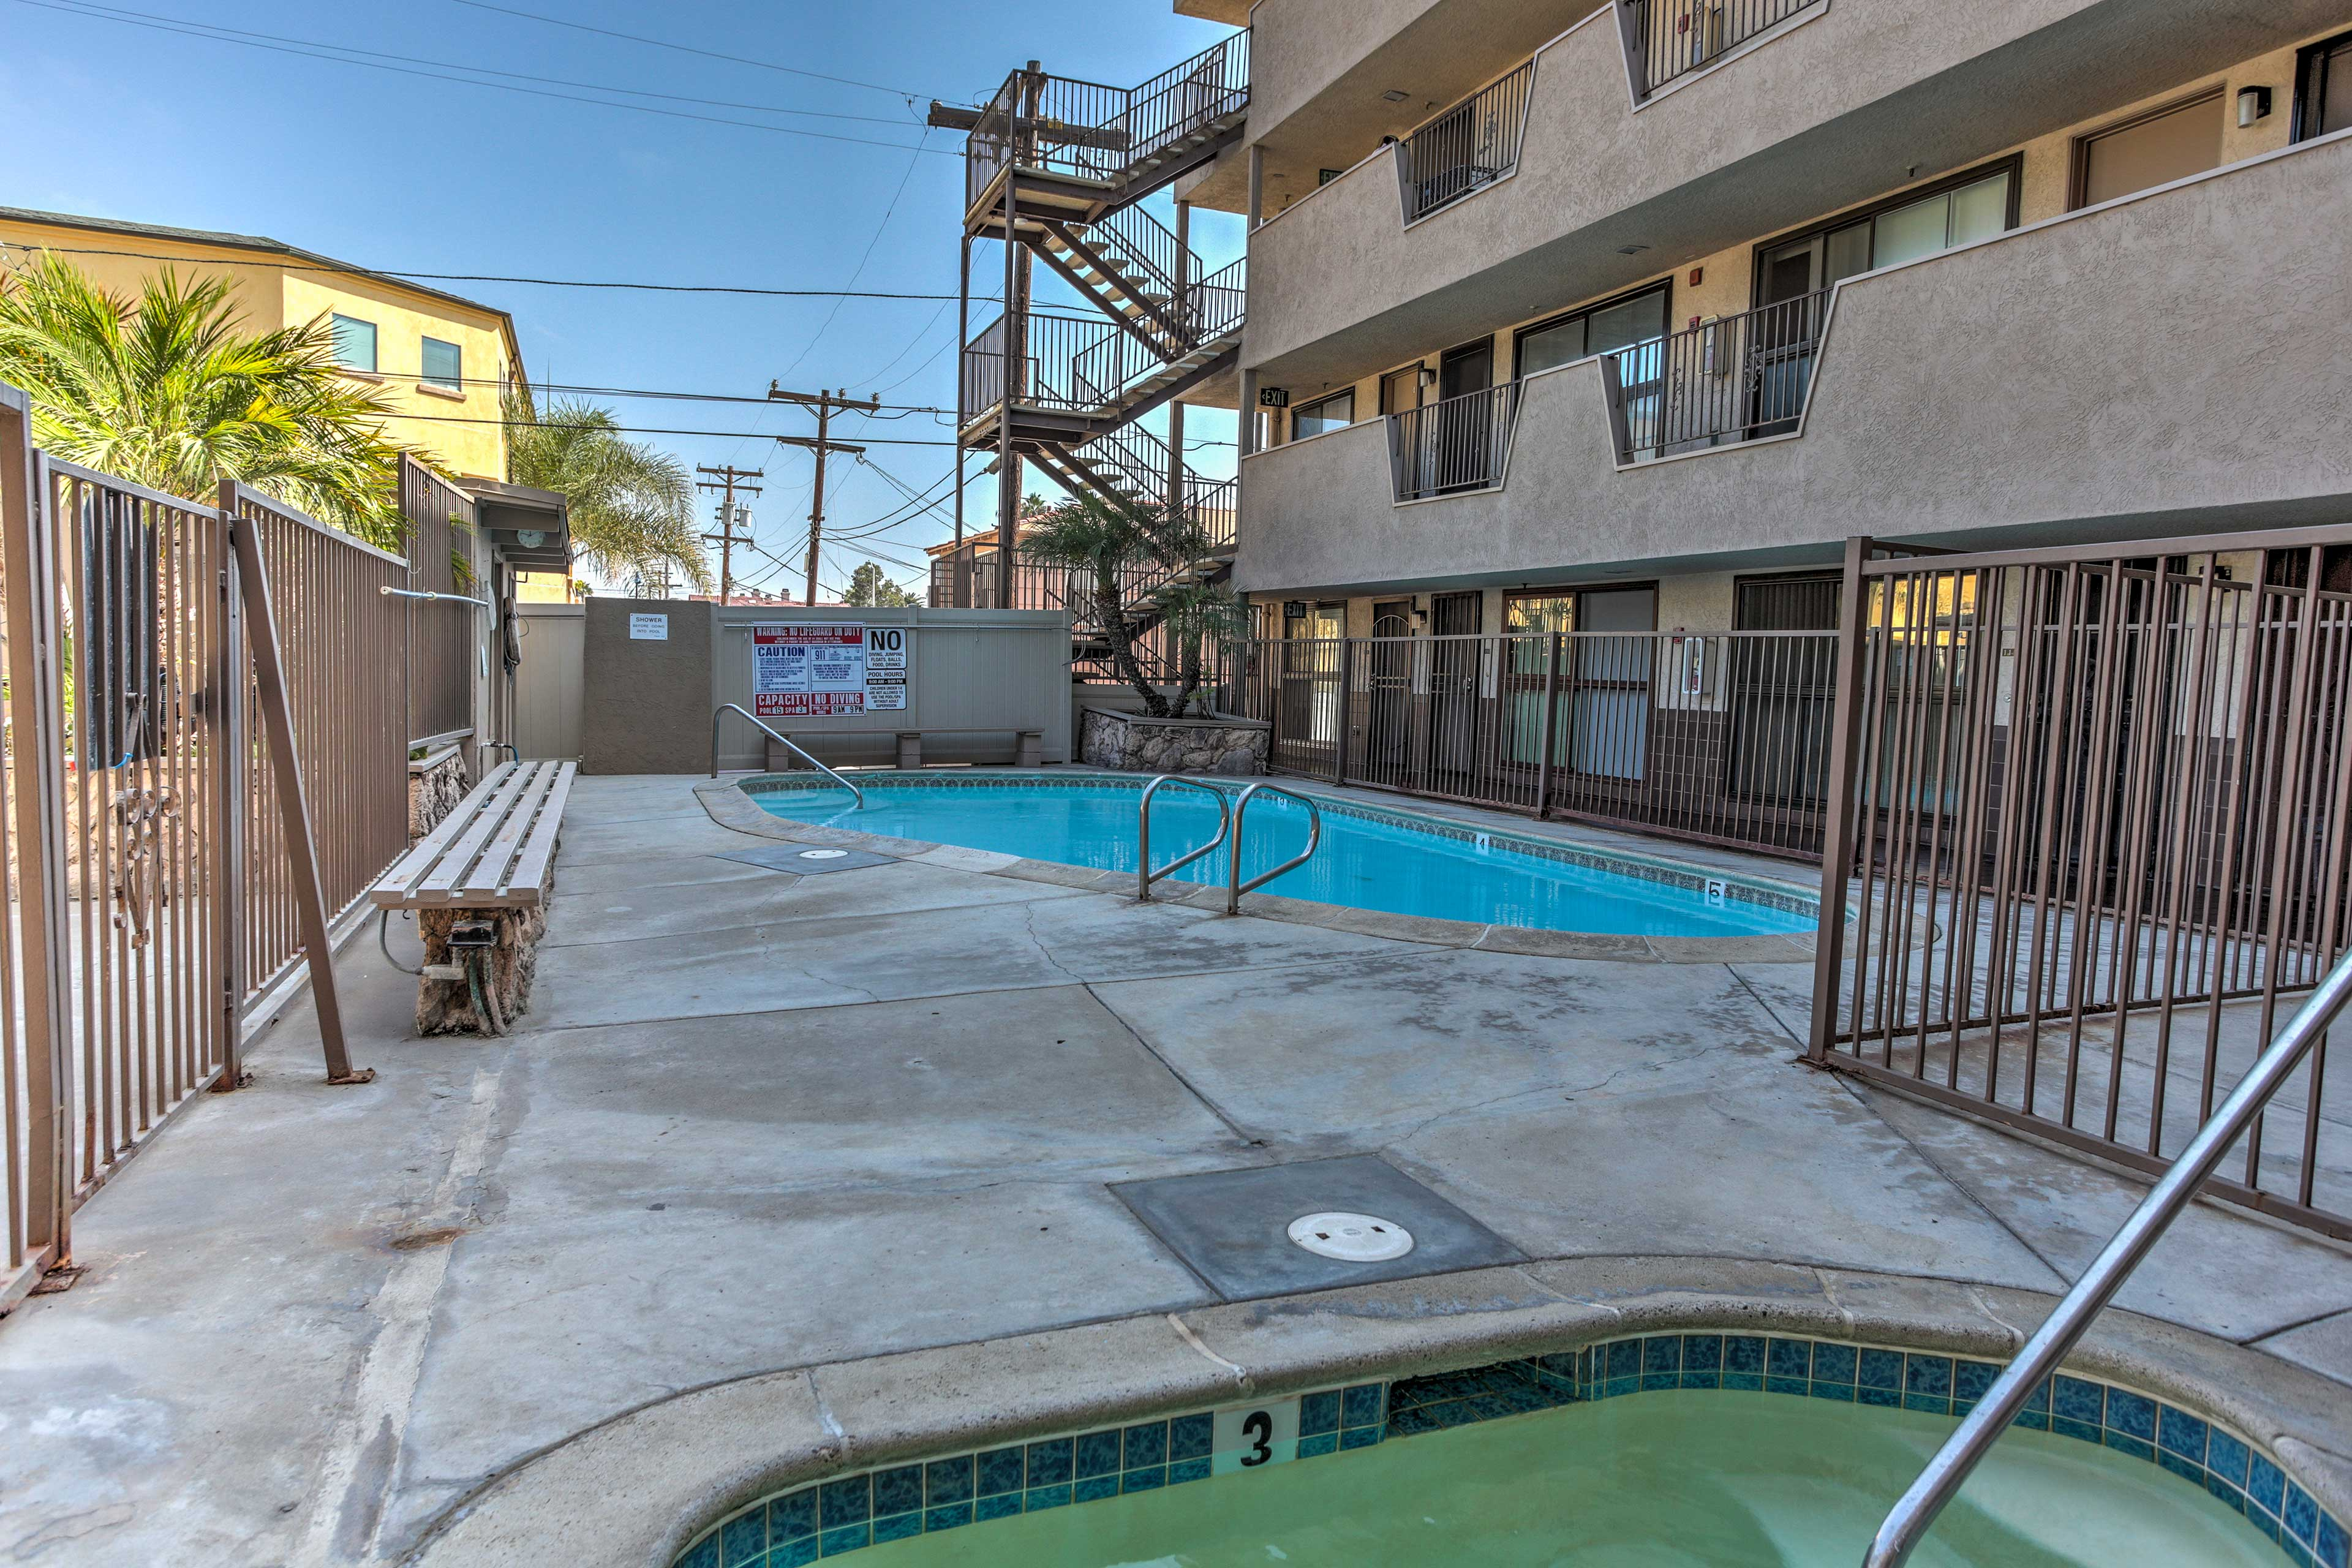 With access to the beach and boardwalk, this condo lets you explore San Diego!